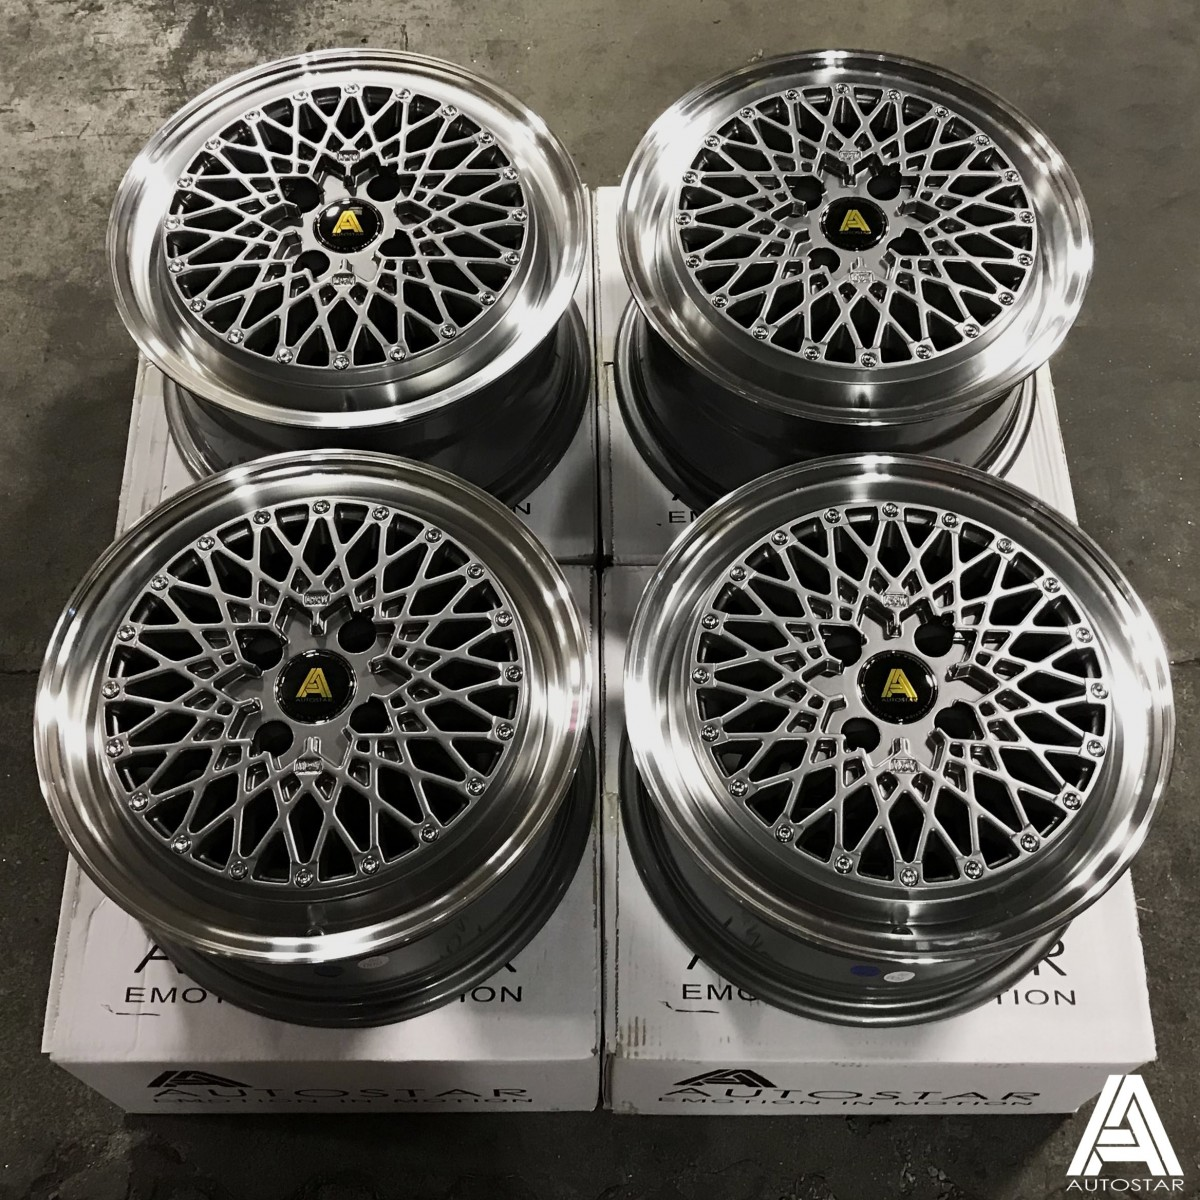 AutoStar Minus 15x7.5 4x100 ET25 Polished with Gunmetal Centre - Set of 4